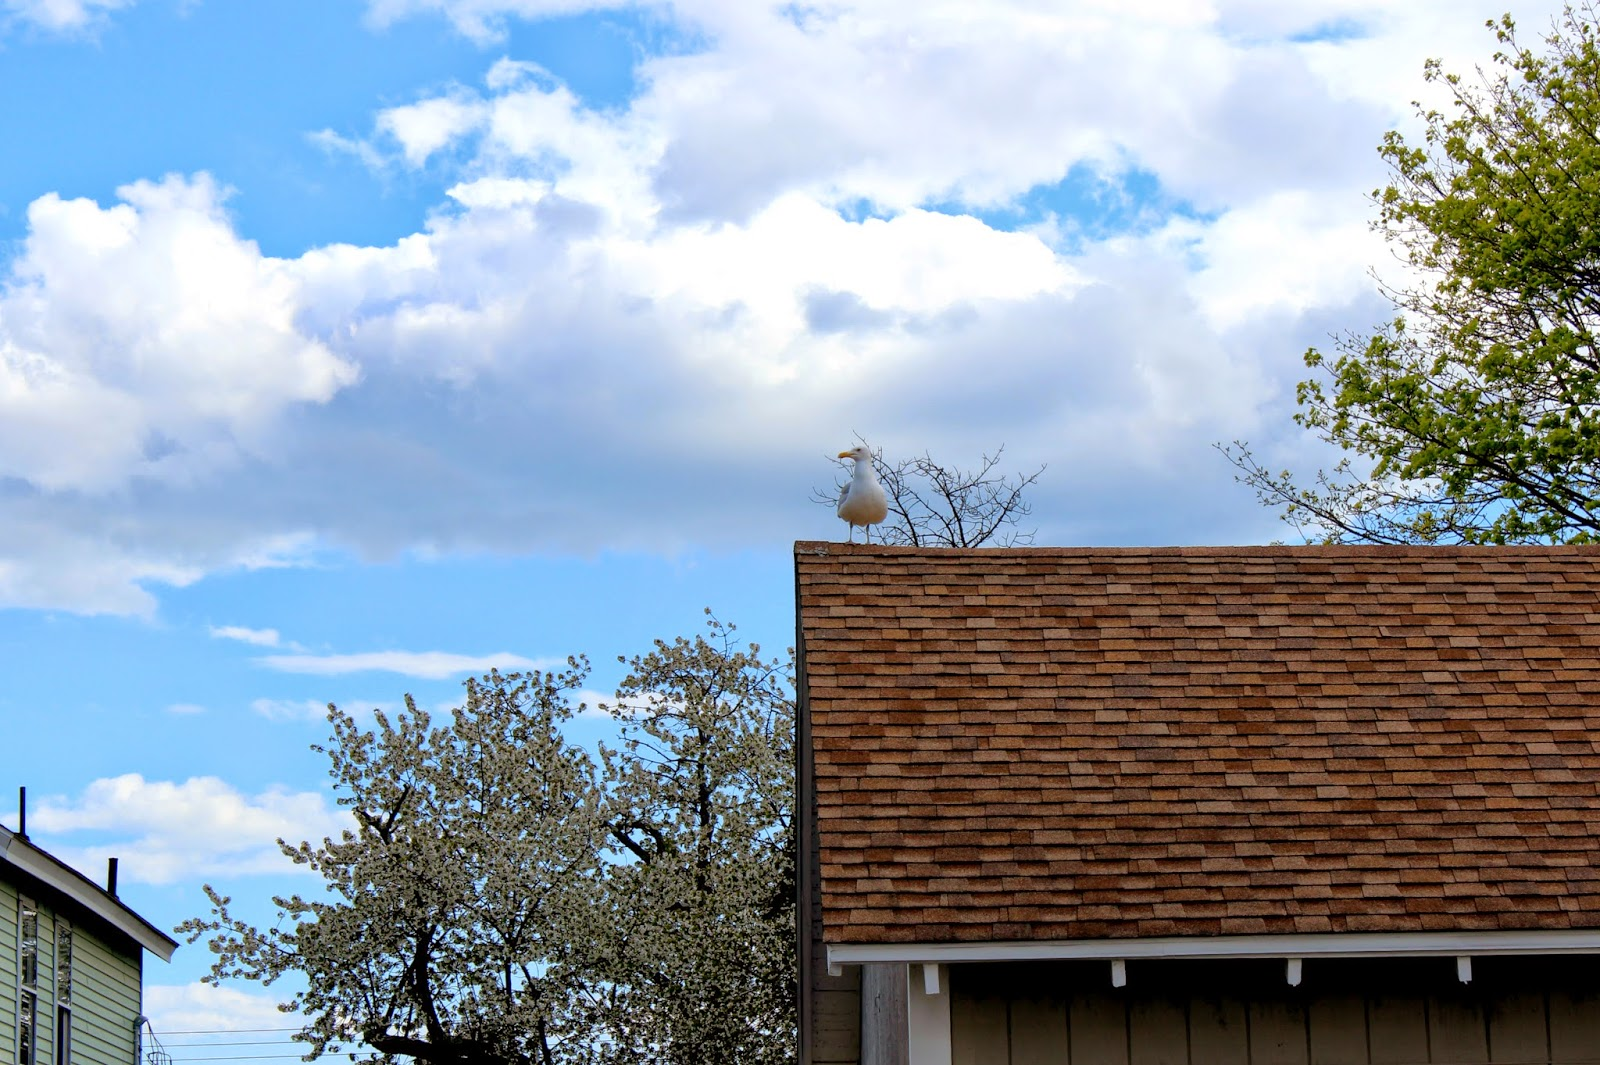 Seagull On Roof